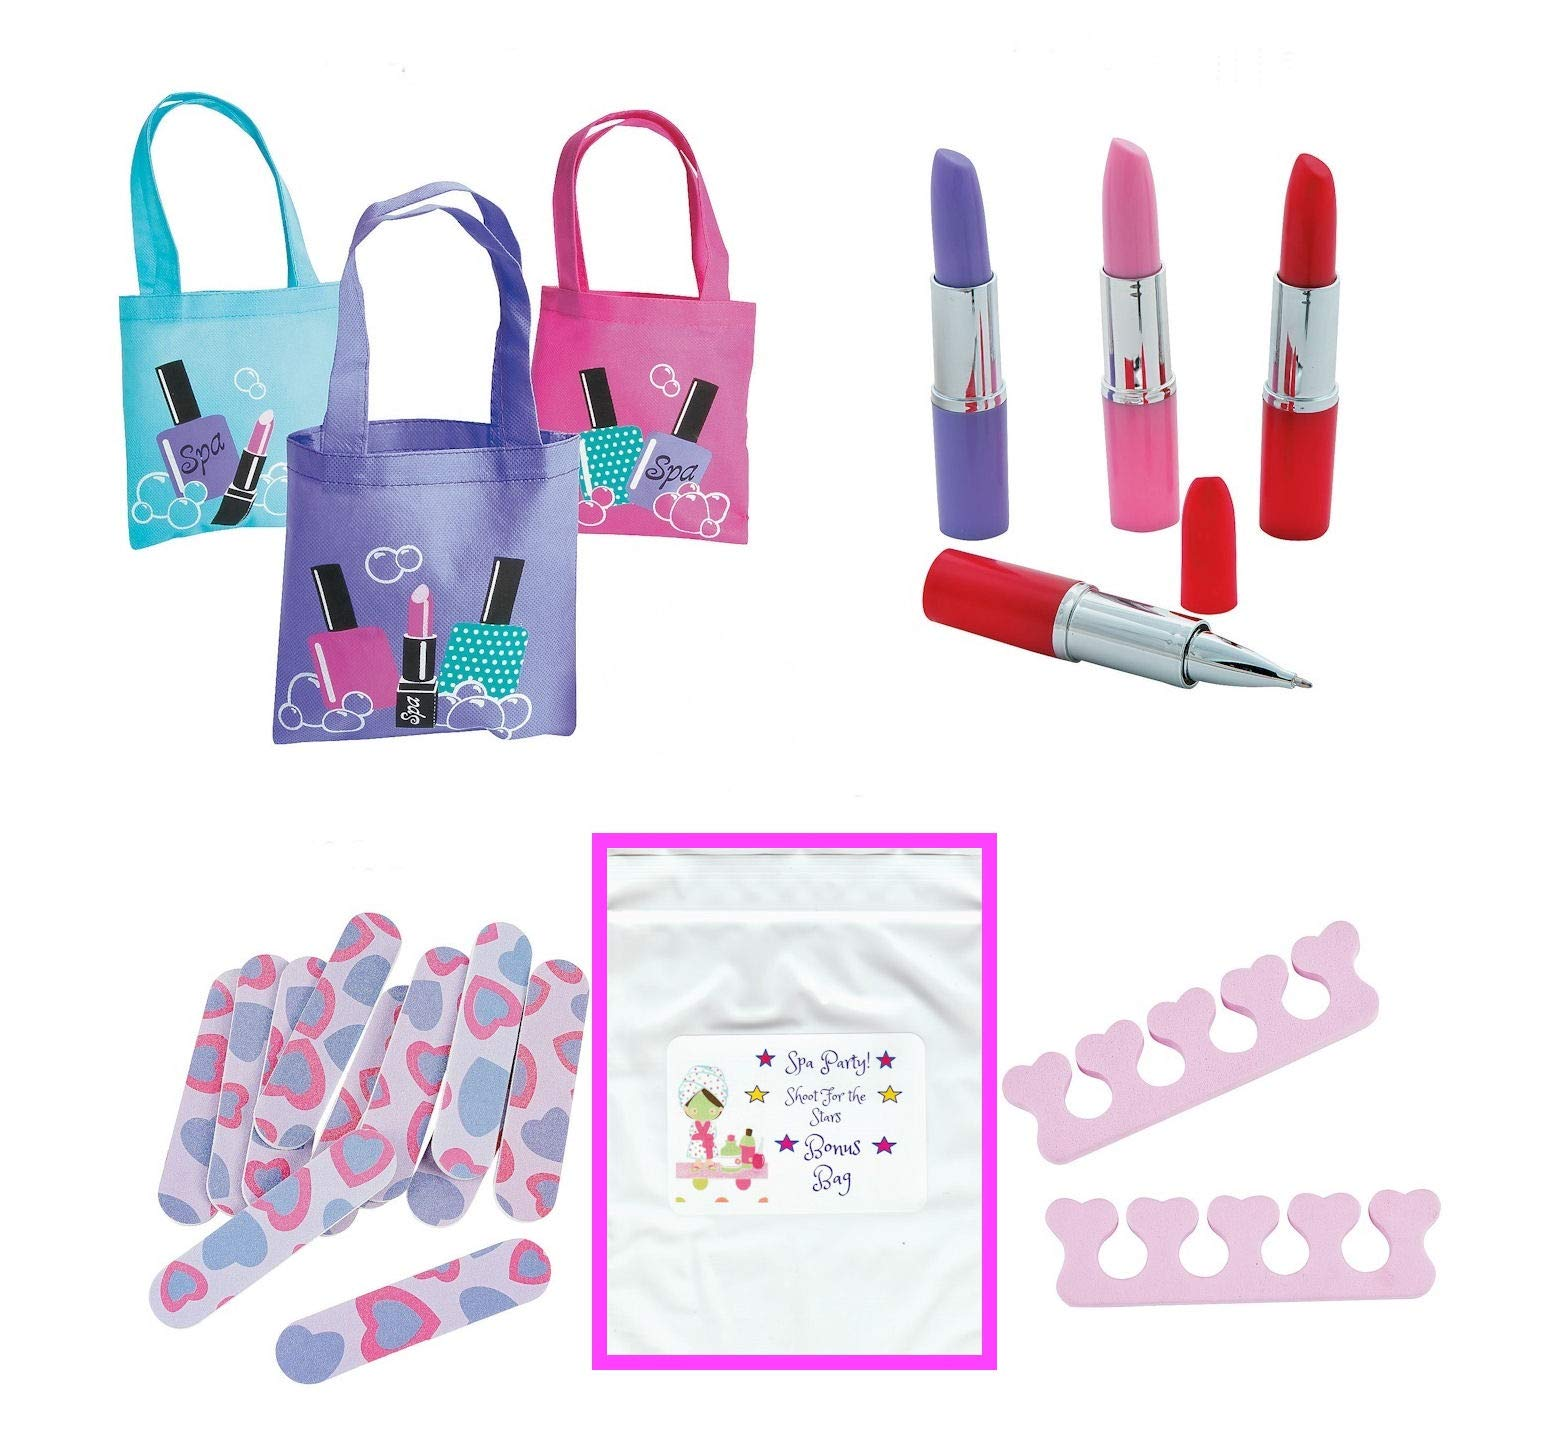 Multiple Girl's Spa Party Favors (12 Tote Bags, 12 Lipstick Tube Shaped Ink Pens, 24 Toe Separators, 12 Emery Boards) by Multiple (Image #1)